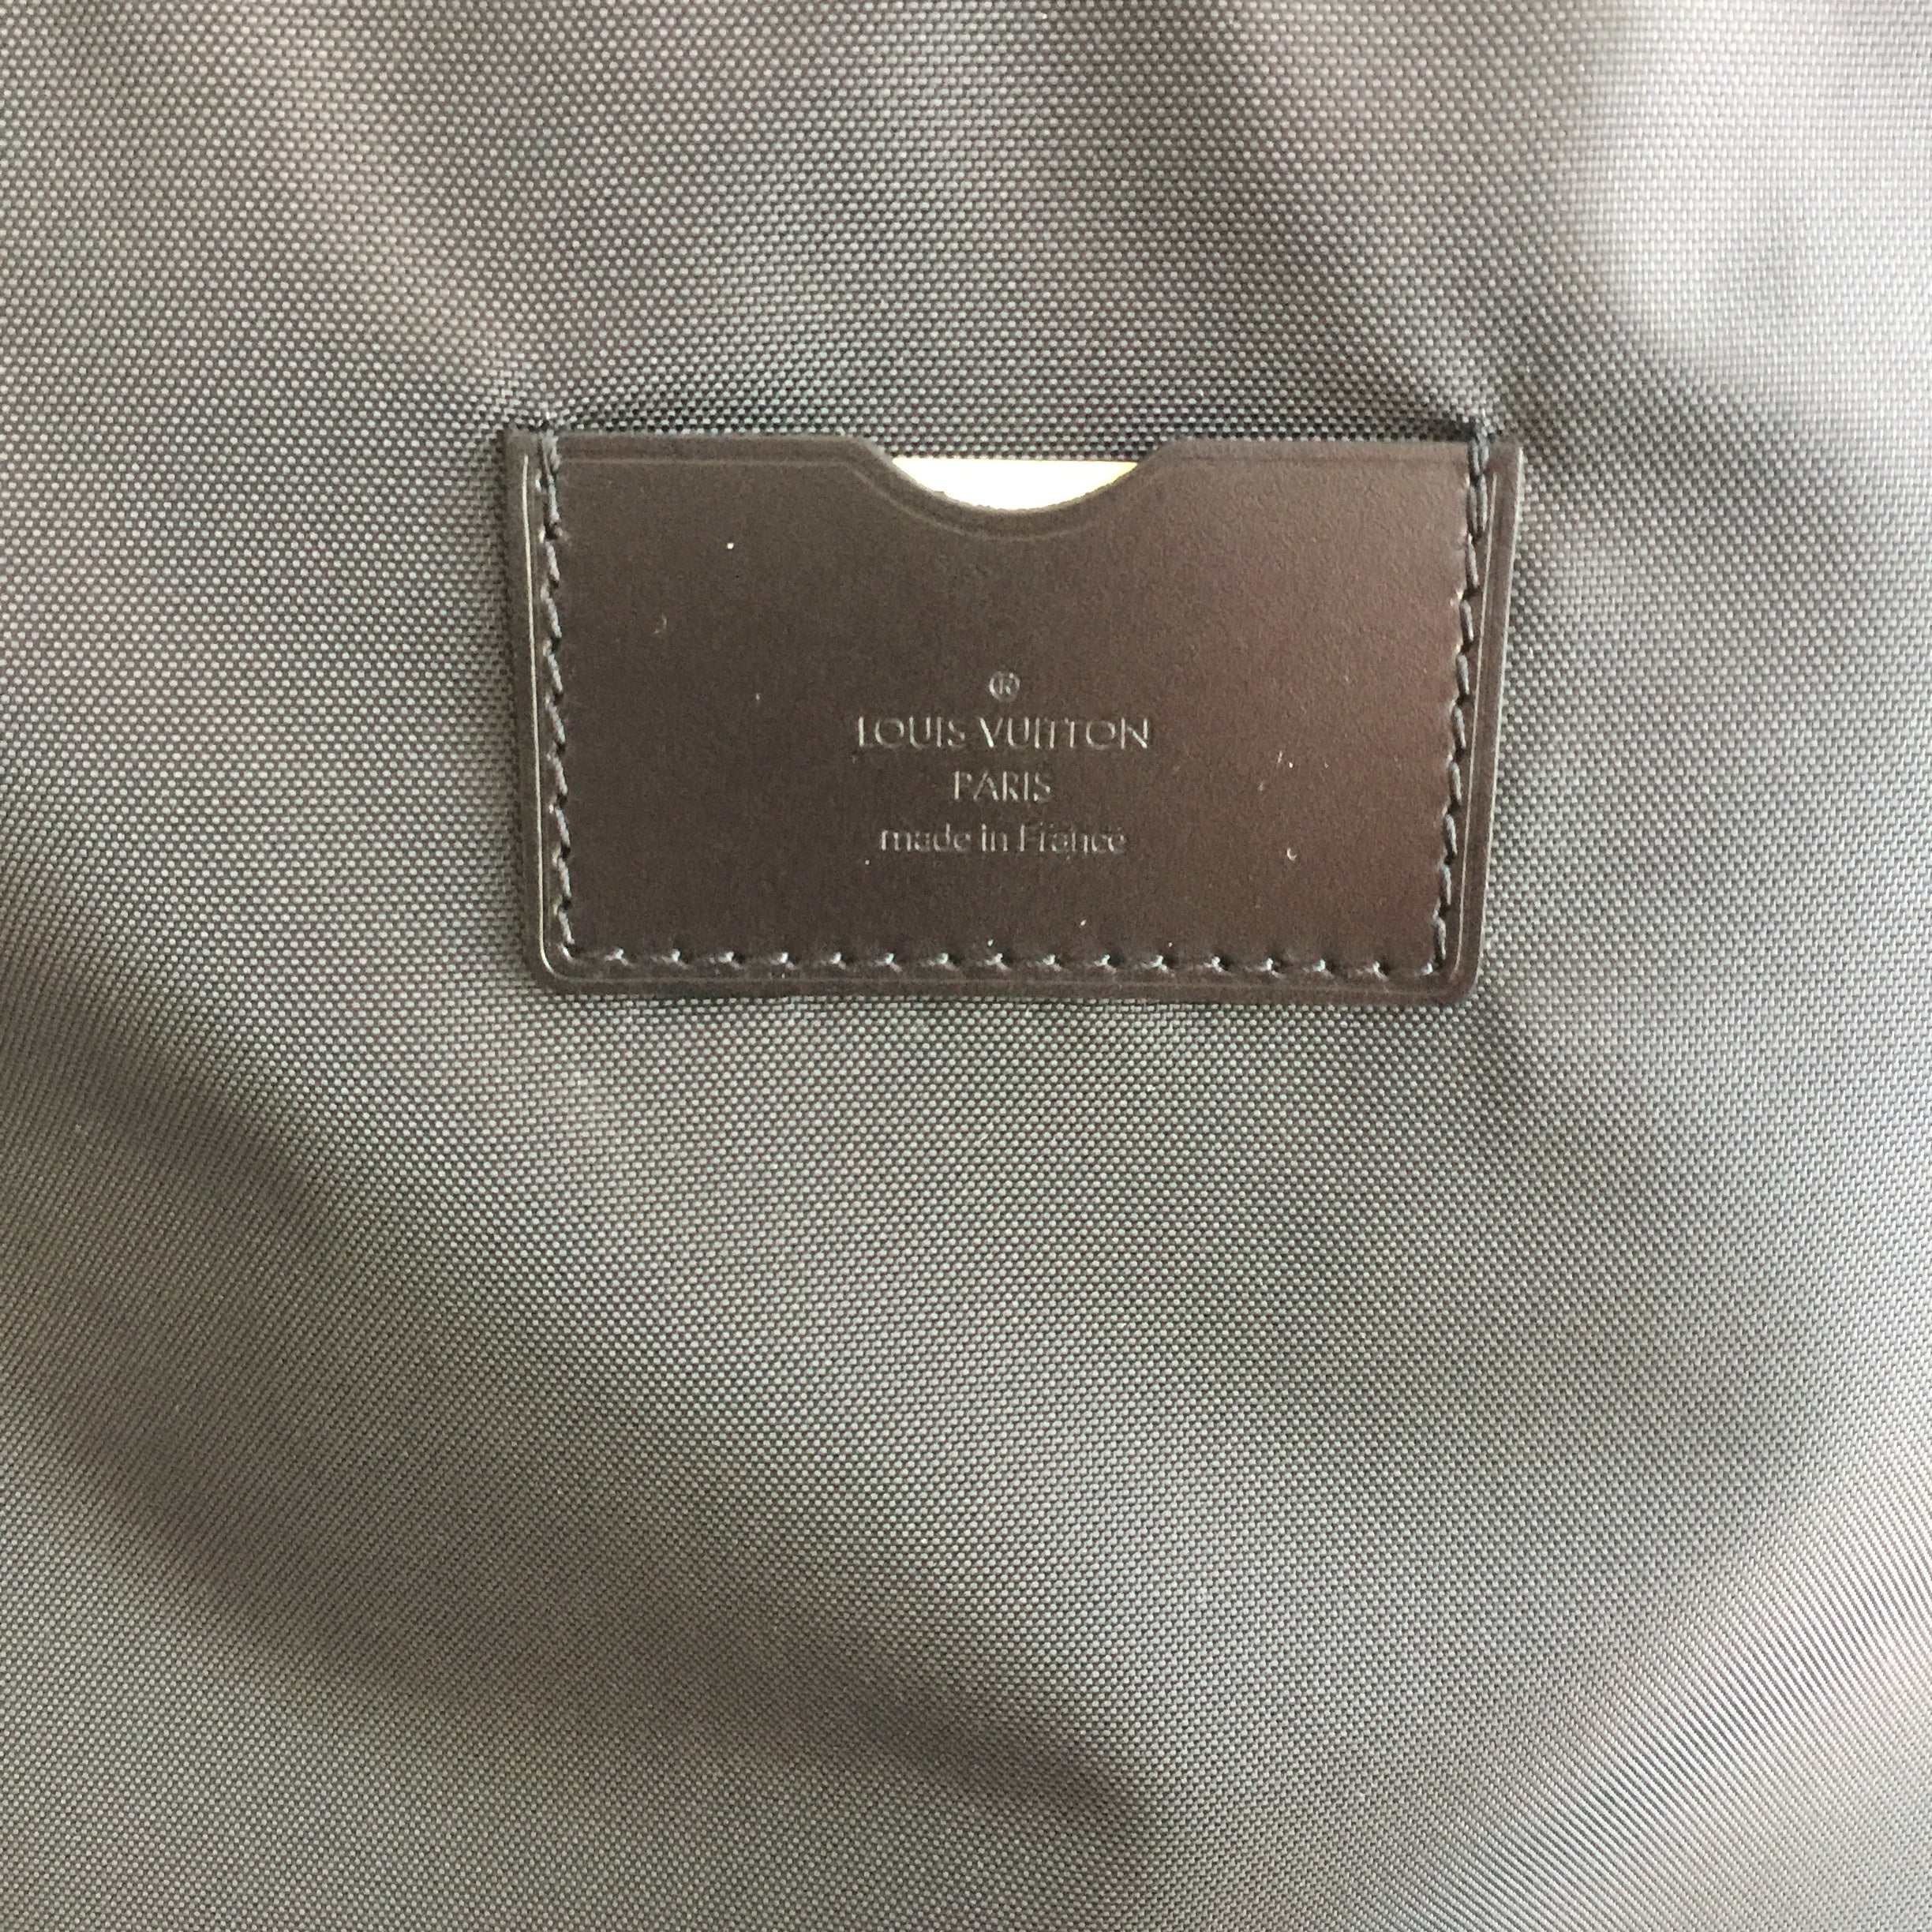 Authentic LOUIS VUITTON Taiga Pagas 45 Luggage